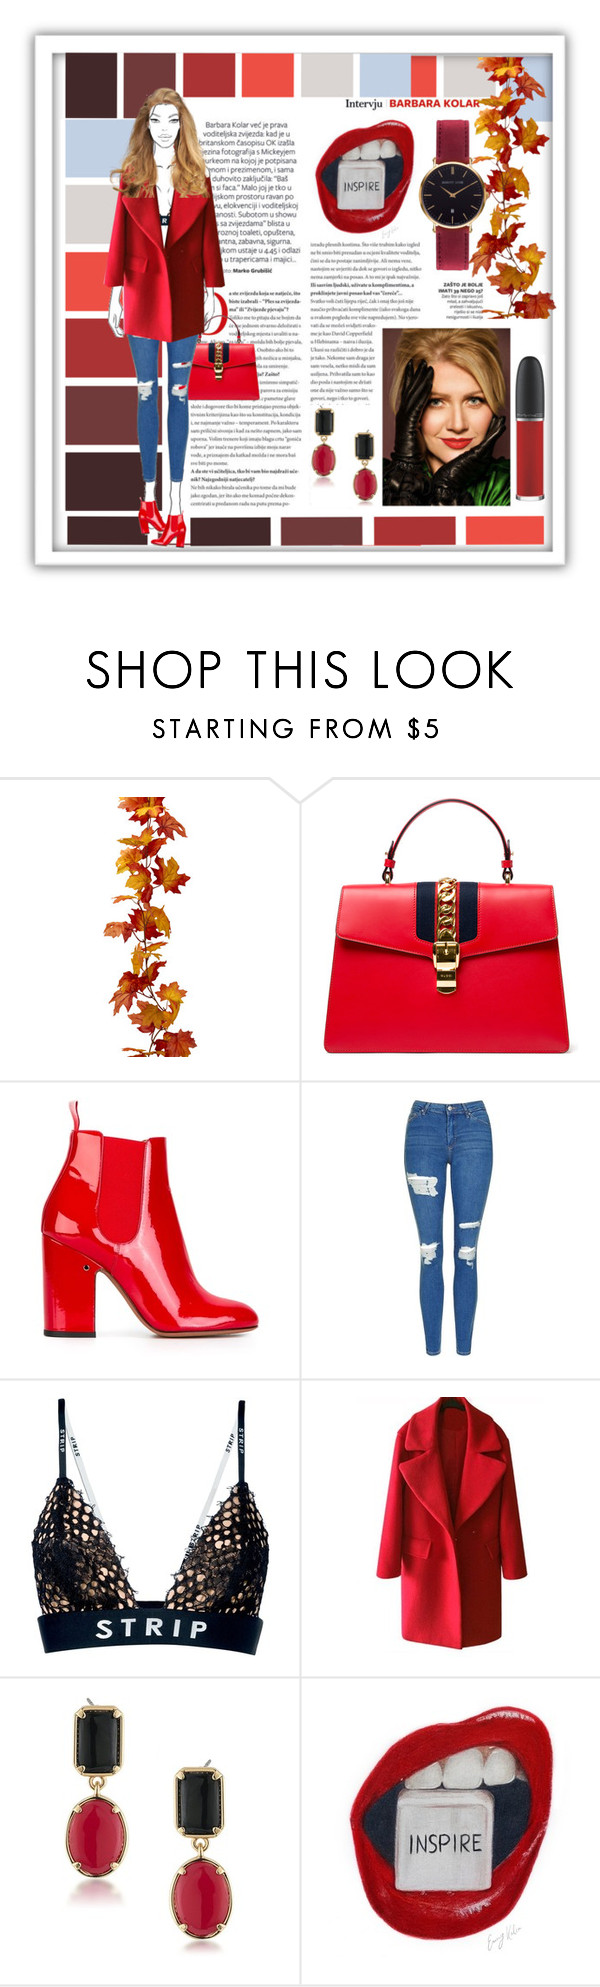 """""""Untitled #534"""" by debysilviaa ❤ liked on Polyvore featuring GALA, Gucci, Laurence Dacade, Topshop, Alexander Wang, 1st & Gorgeous by Carolee, Abbott Lyon and MAC Cosmetics"""